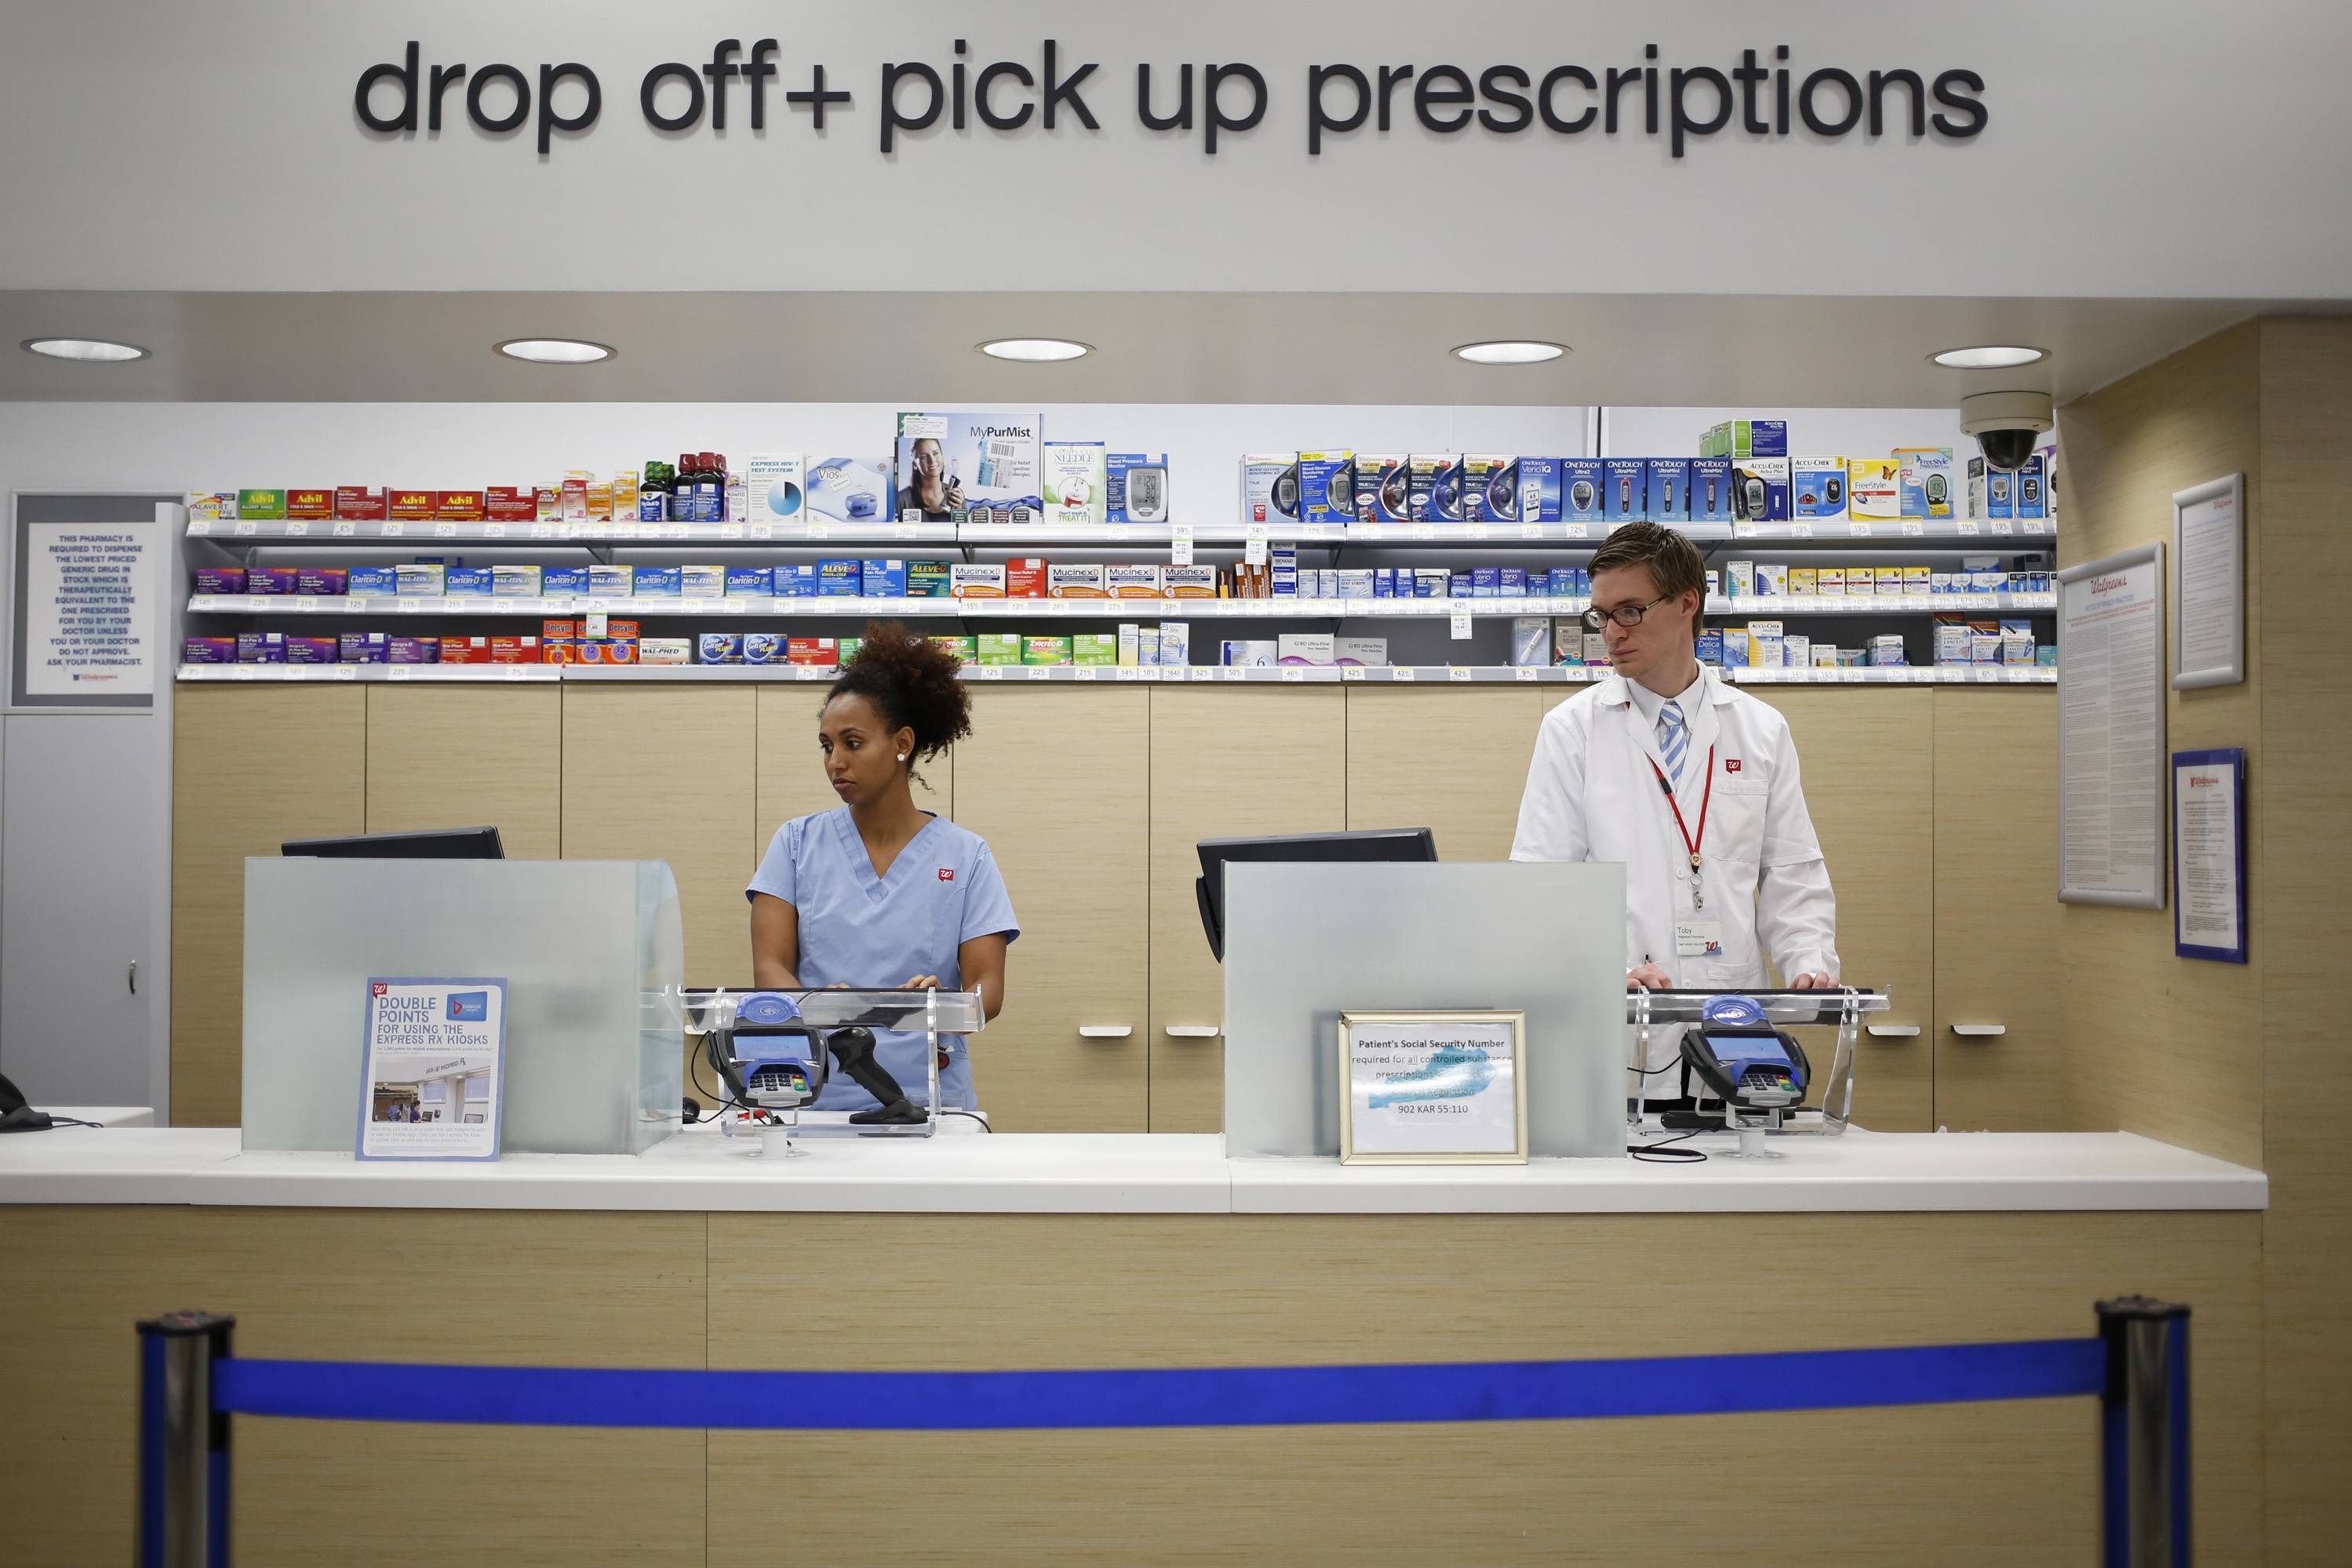 Walgeens announced Thursday it is teaming up with FedEx to provide next-day delivery of prescription drugs from the company's pharmacies.